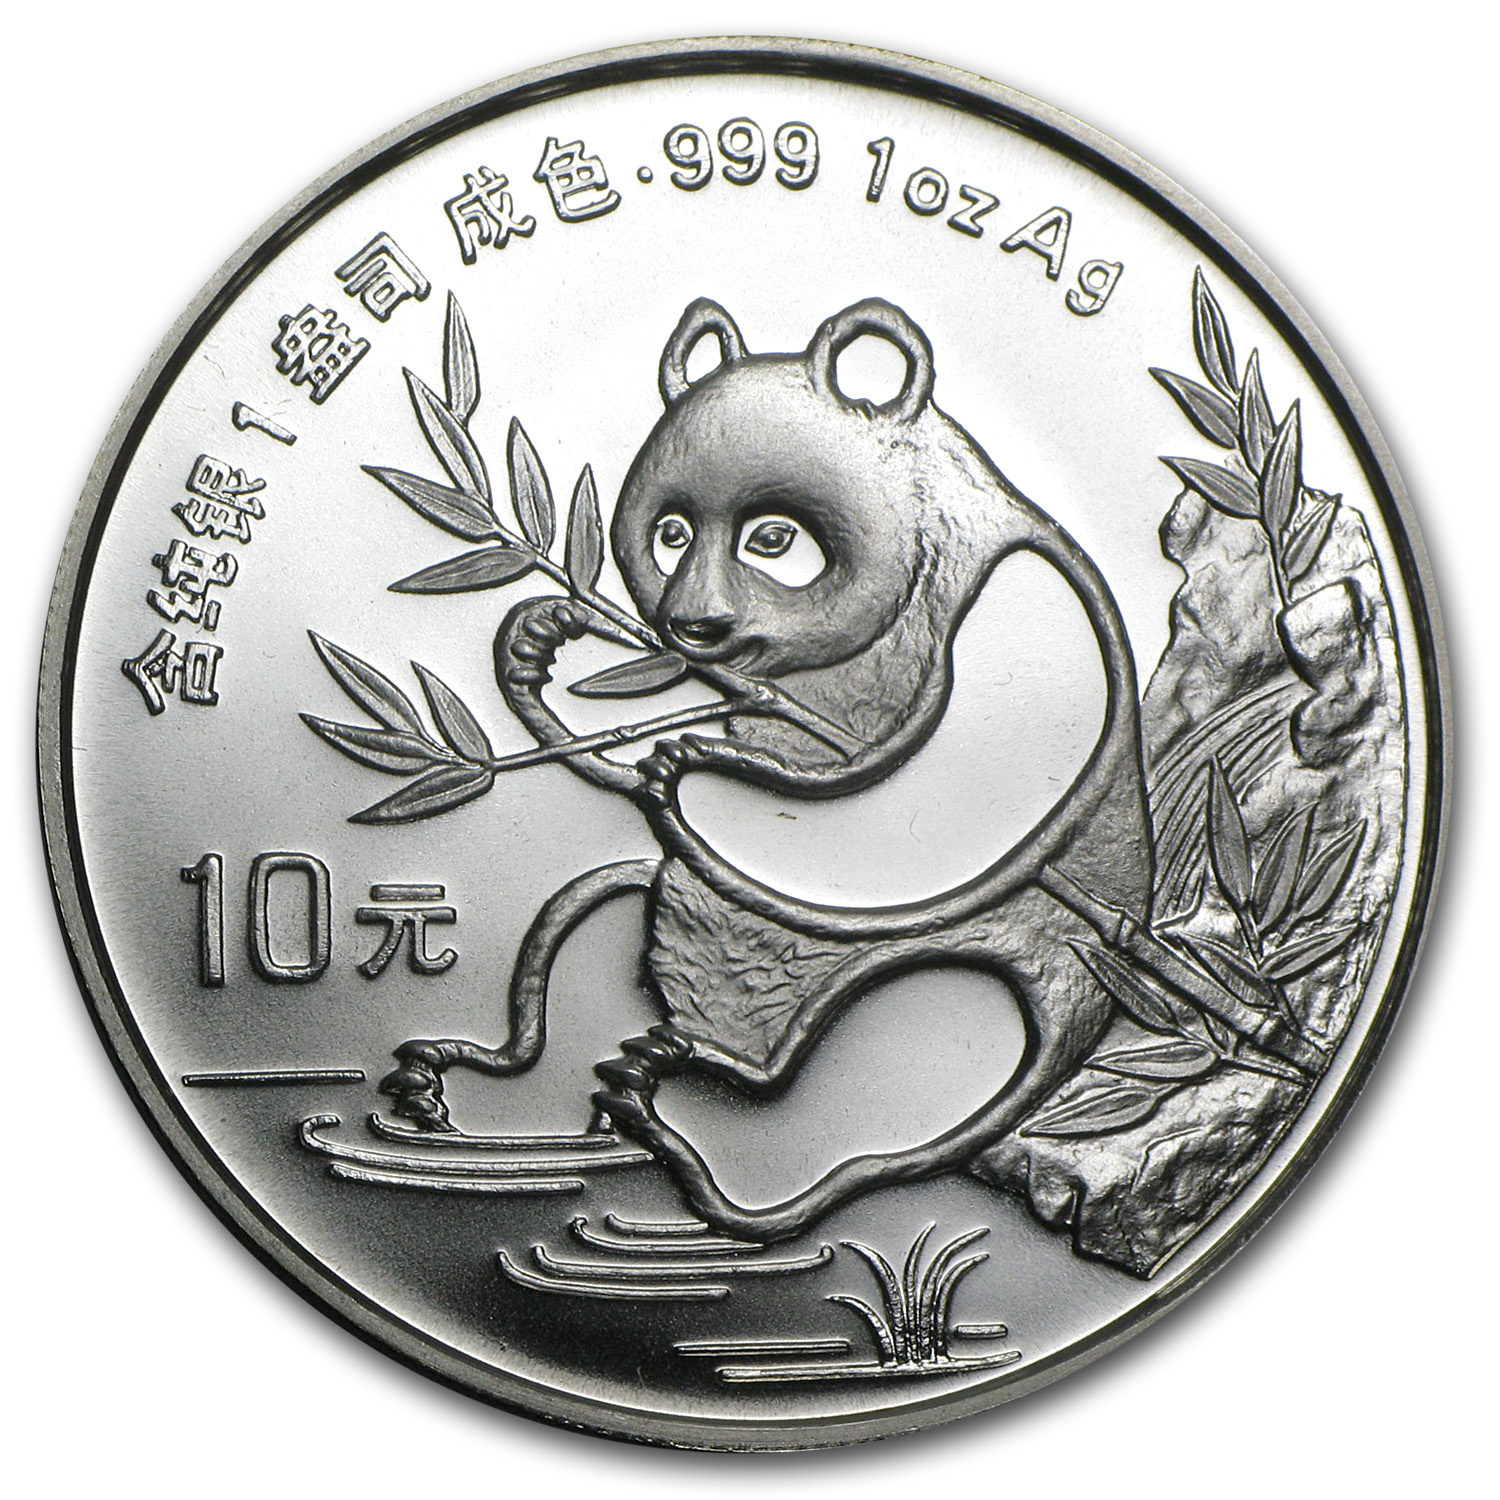 1991 China 1 oz Silver Panda Large Date BU (Capsule only)